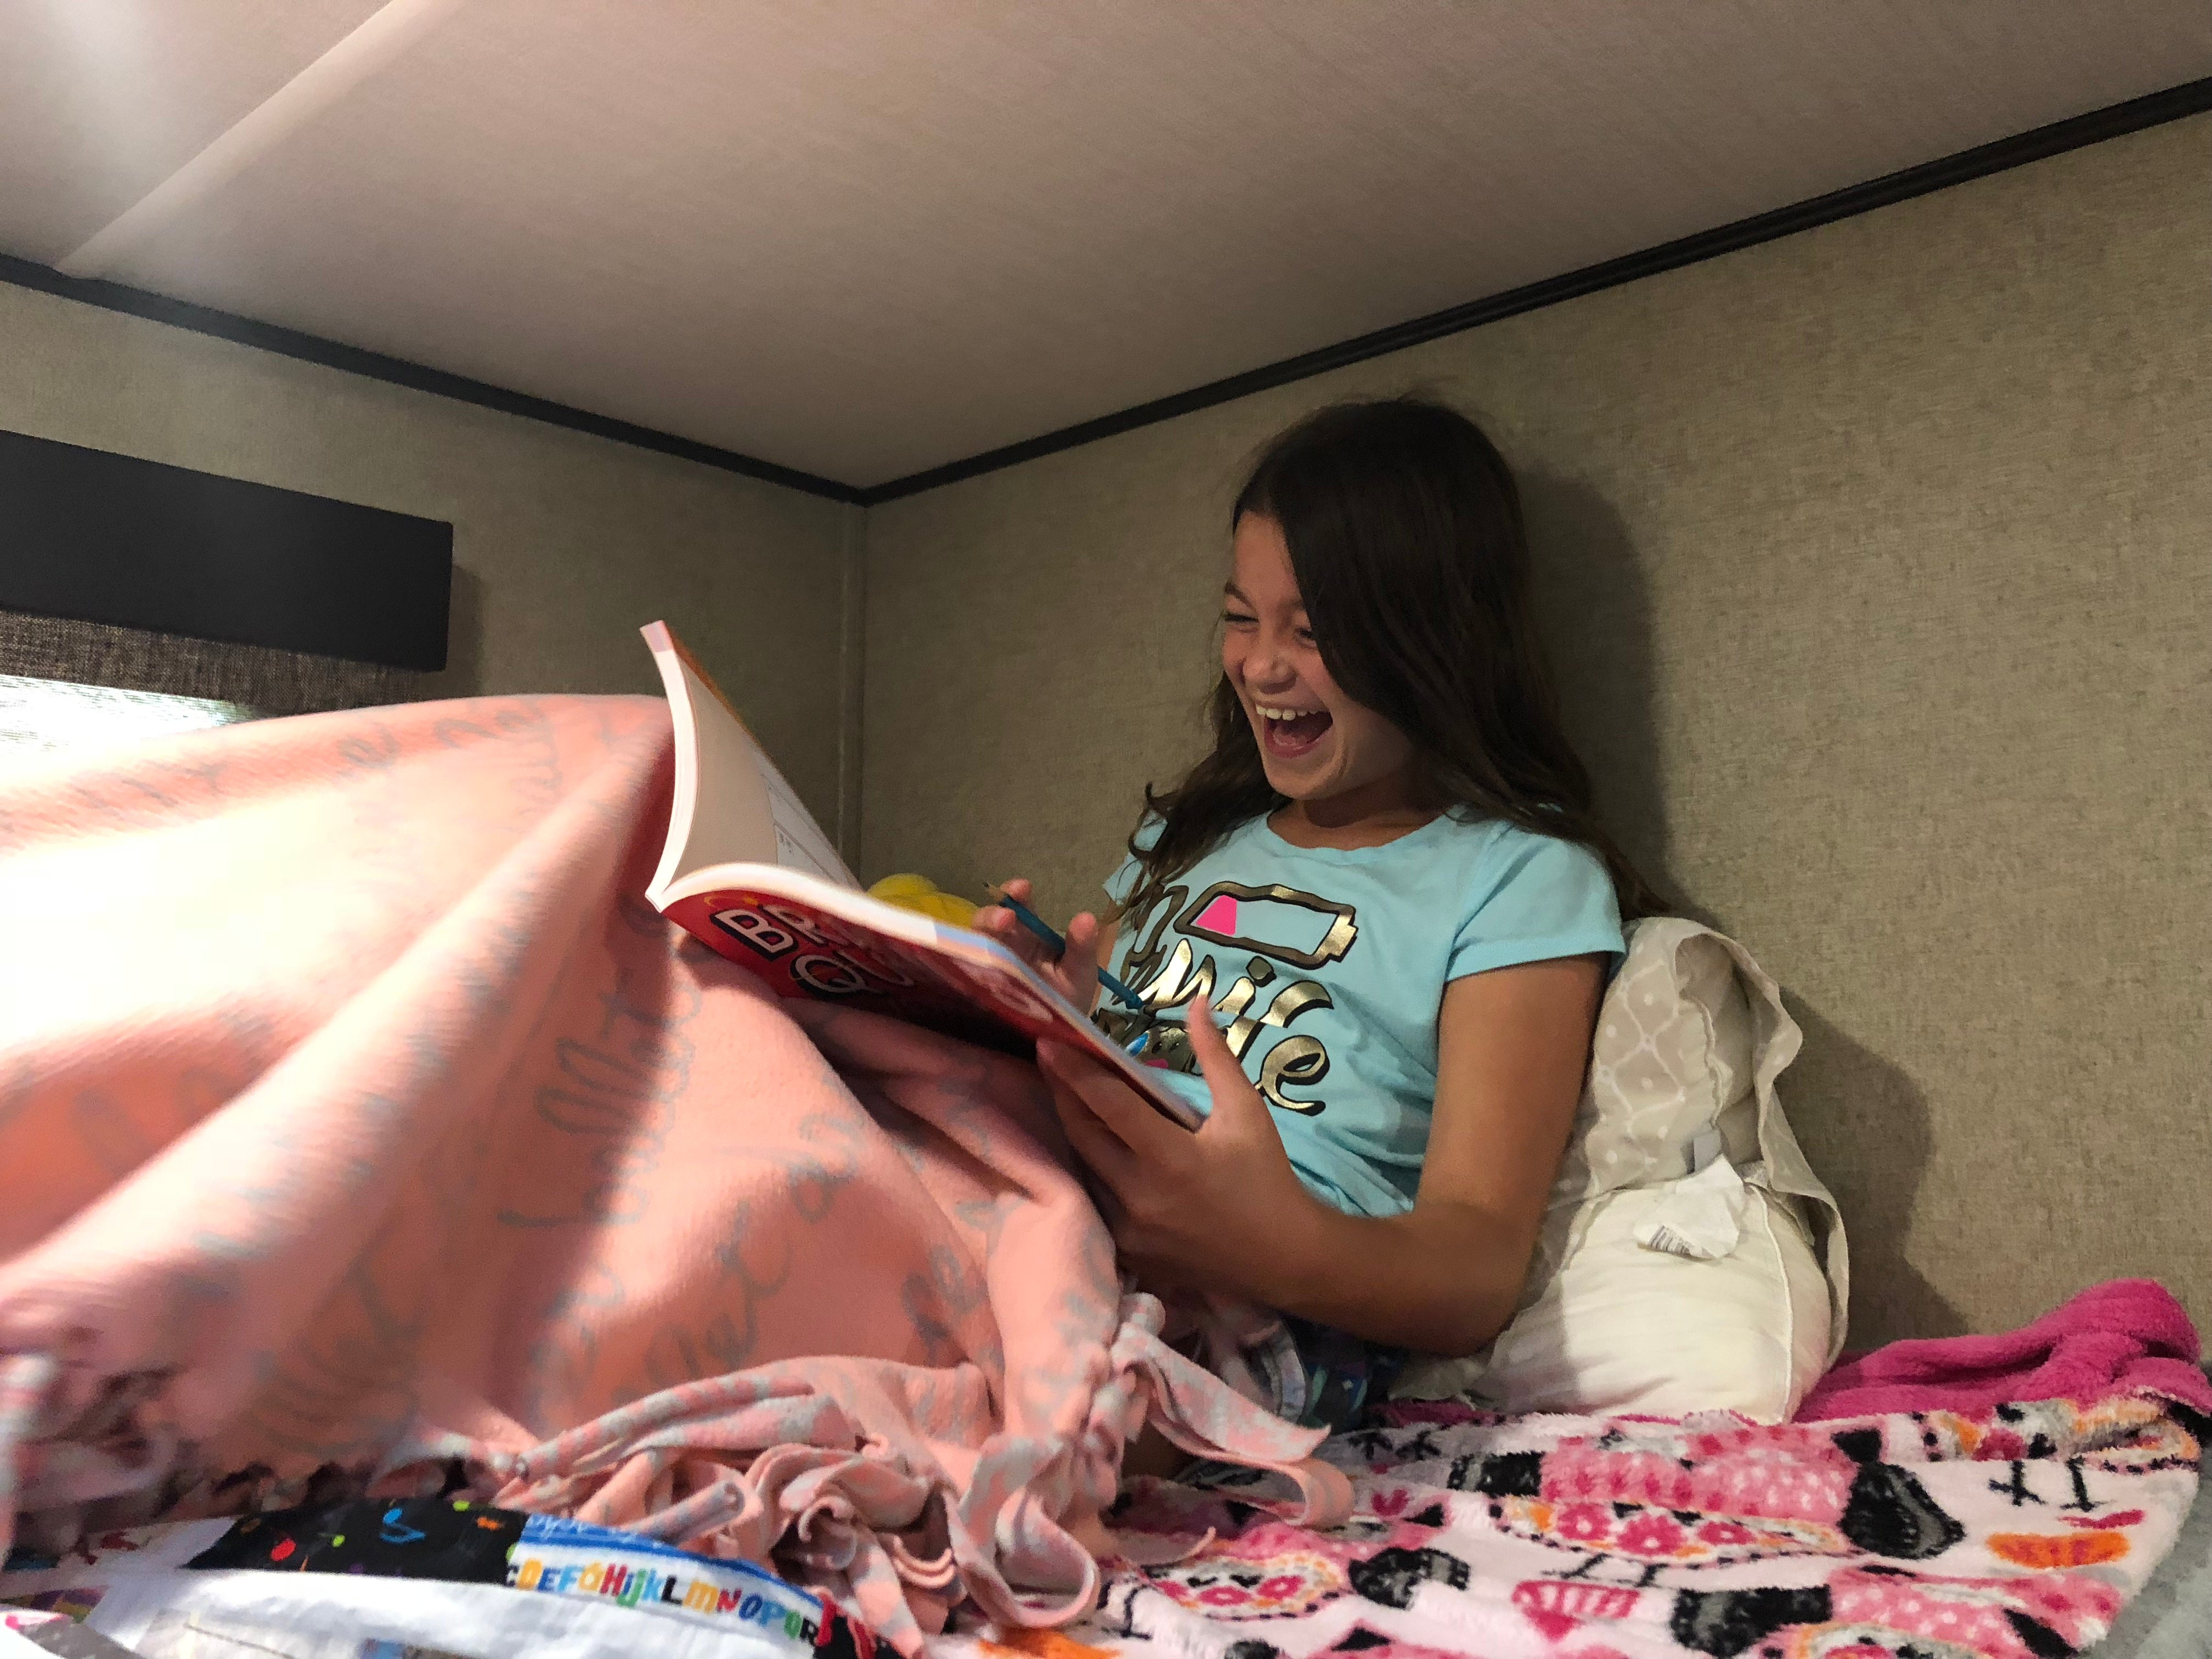 Reading in an RV bunkhouse